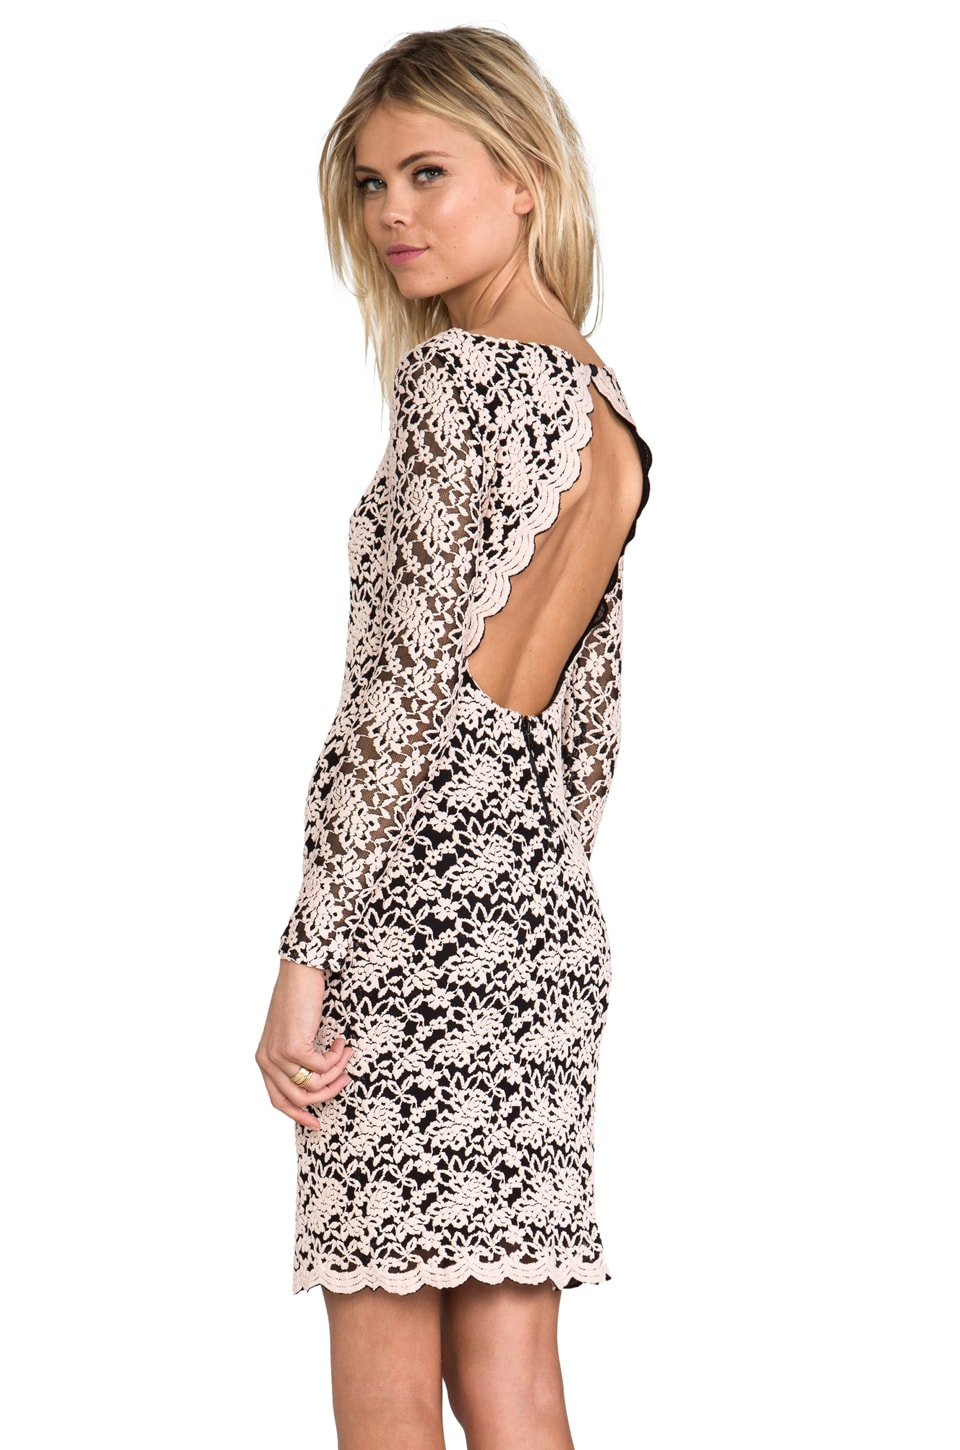 Alice + Olivia Khloe Open Keyhole Back Dress in Black/Pink